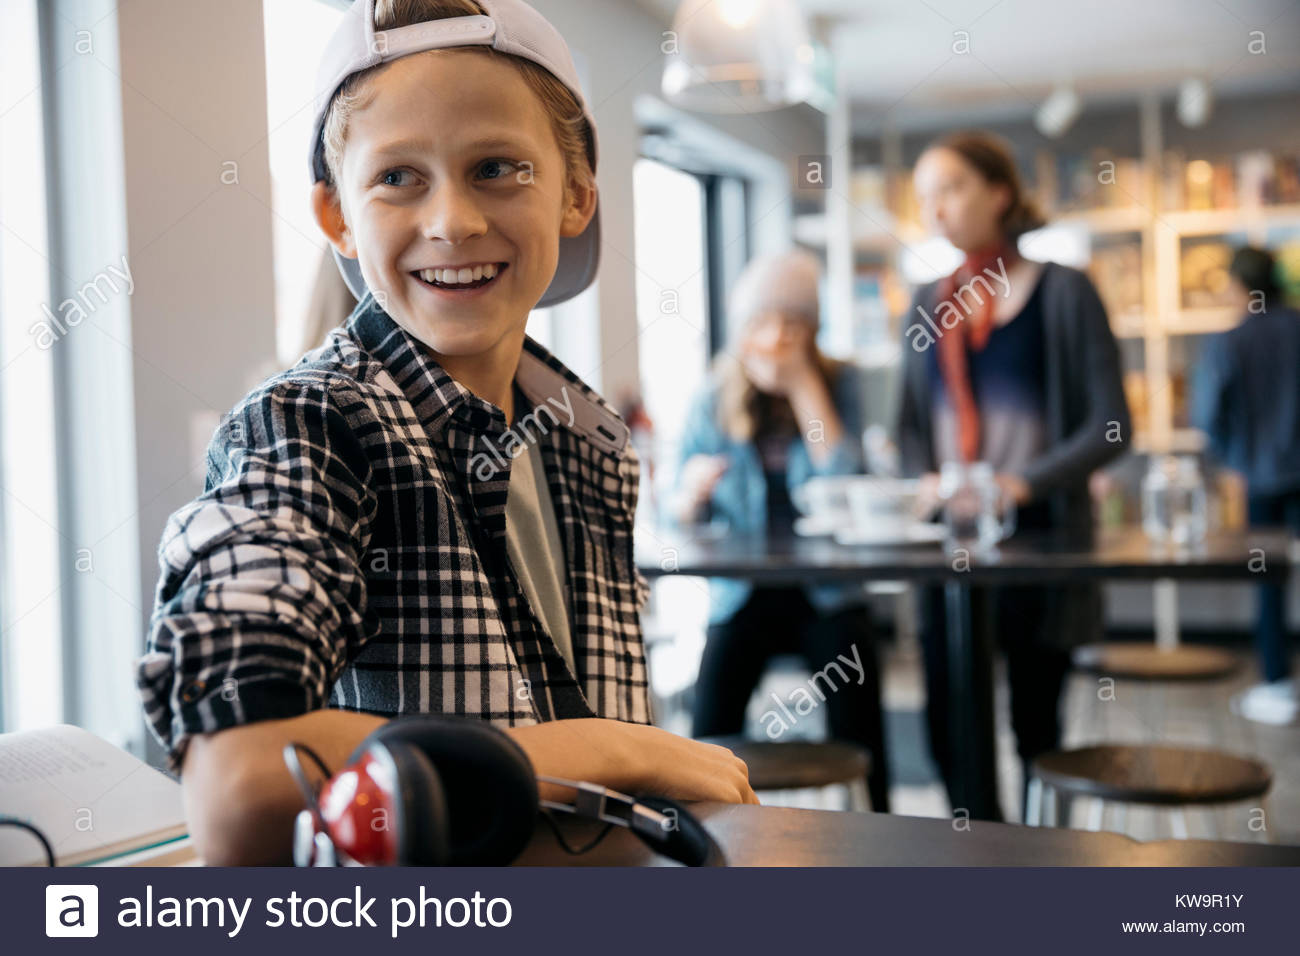 Smiling Caucasian boy high school student looking at cafe Photo Stock